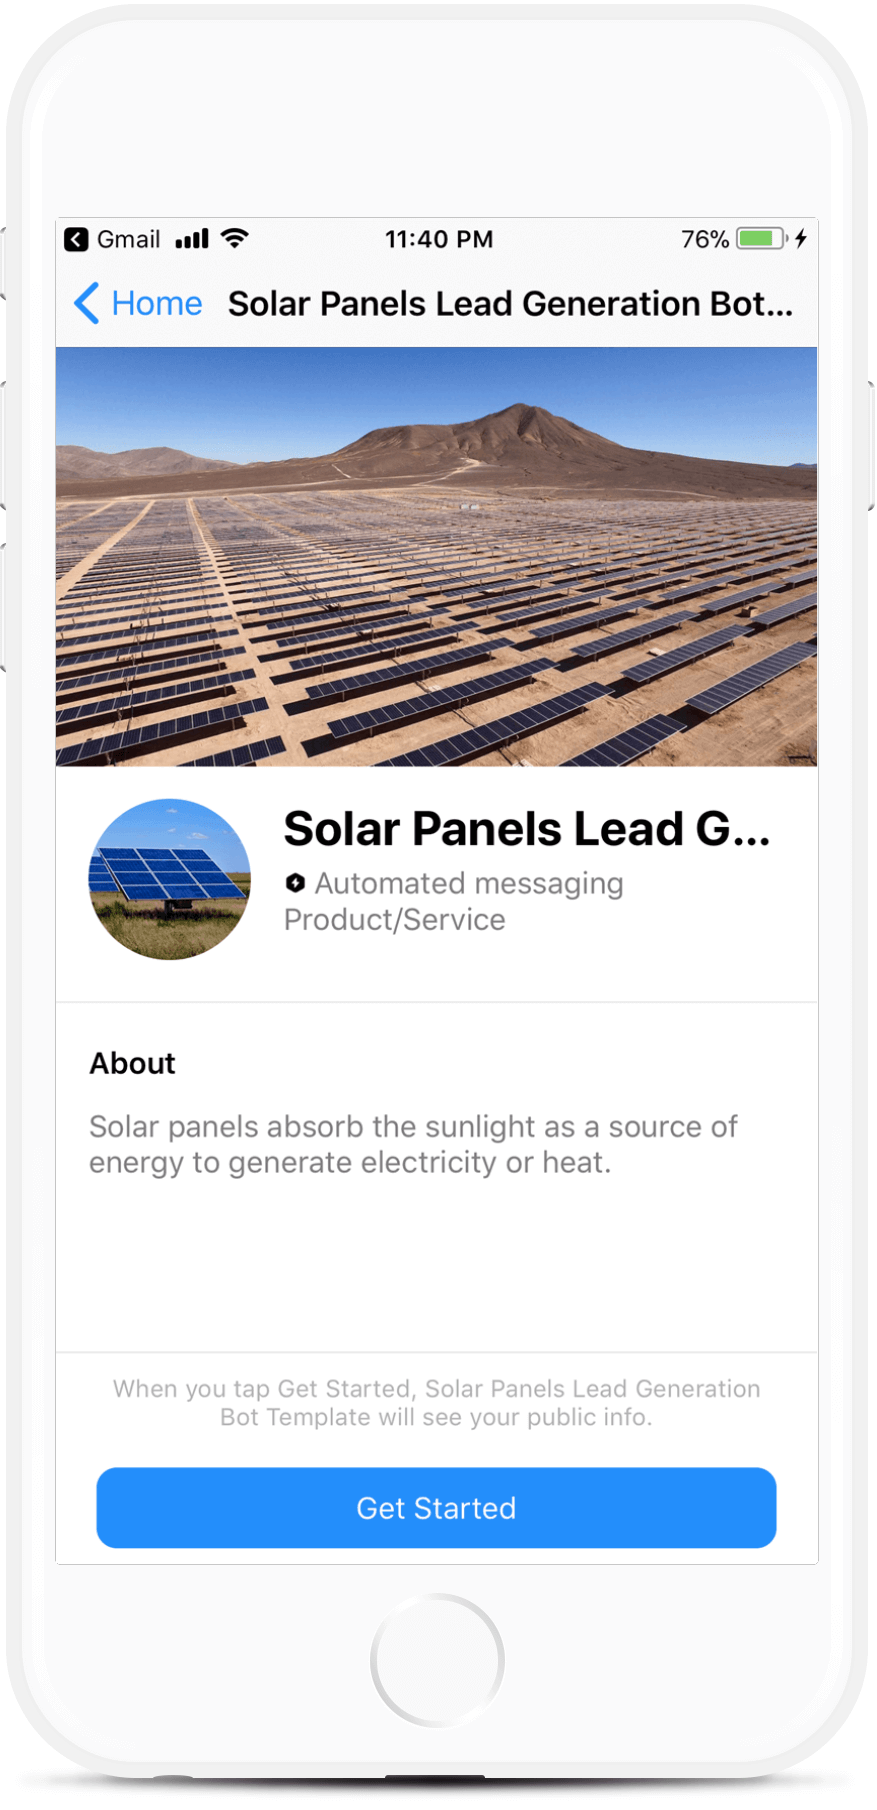 Solar Panels Lead Generation Bot Template